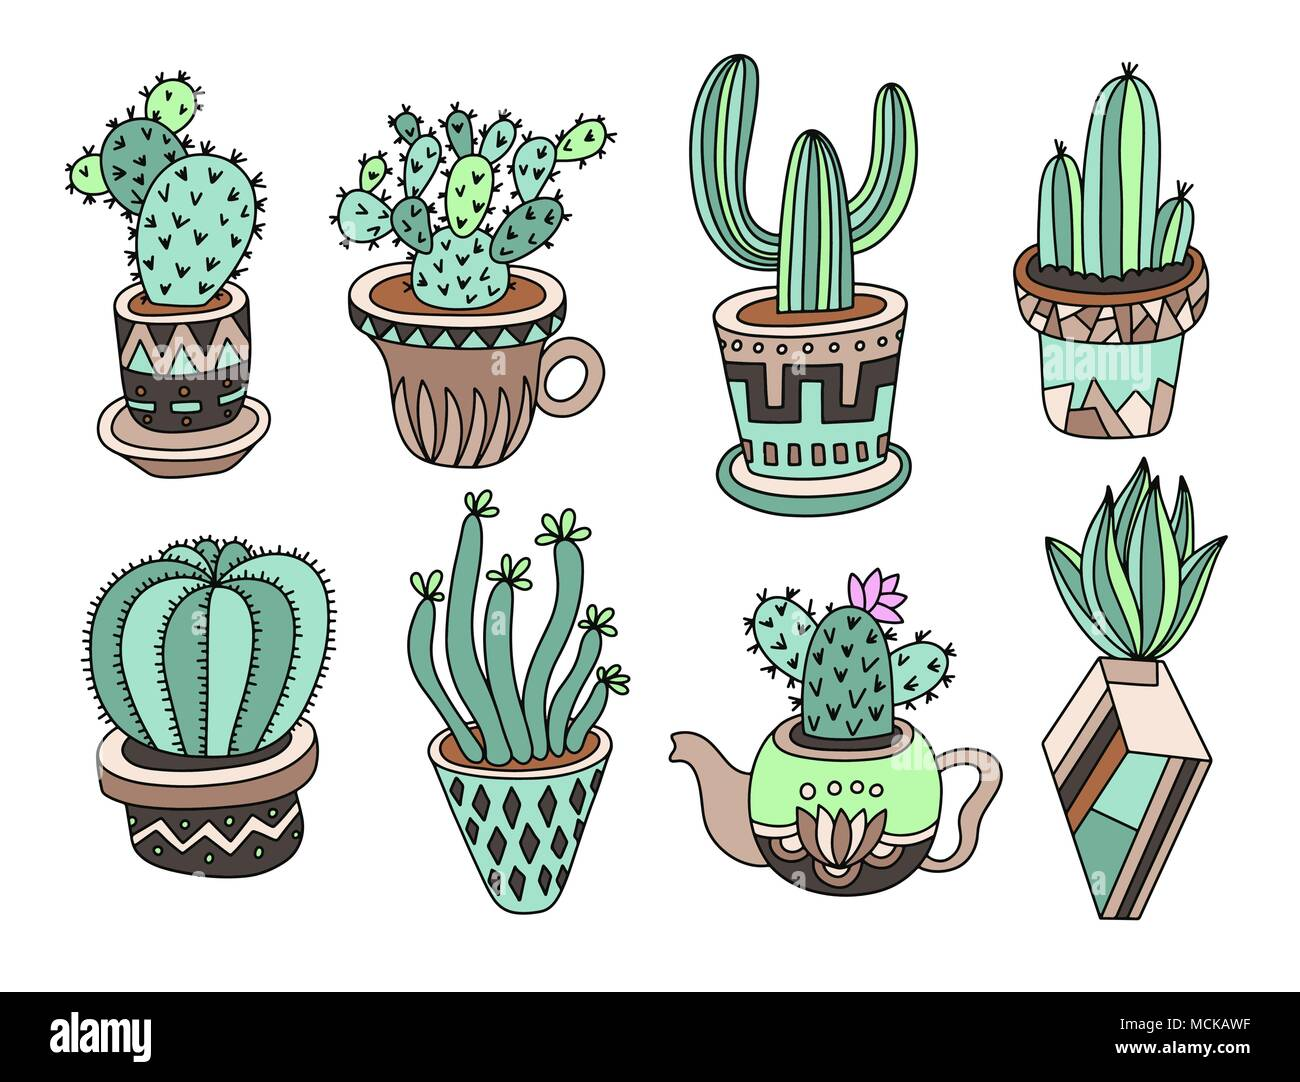 Collection De Cactus Doodle Dessin à La Main Ensemble De